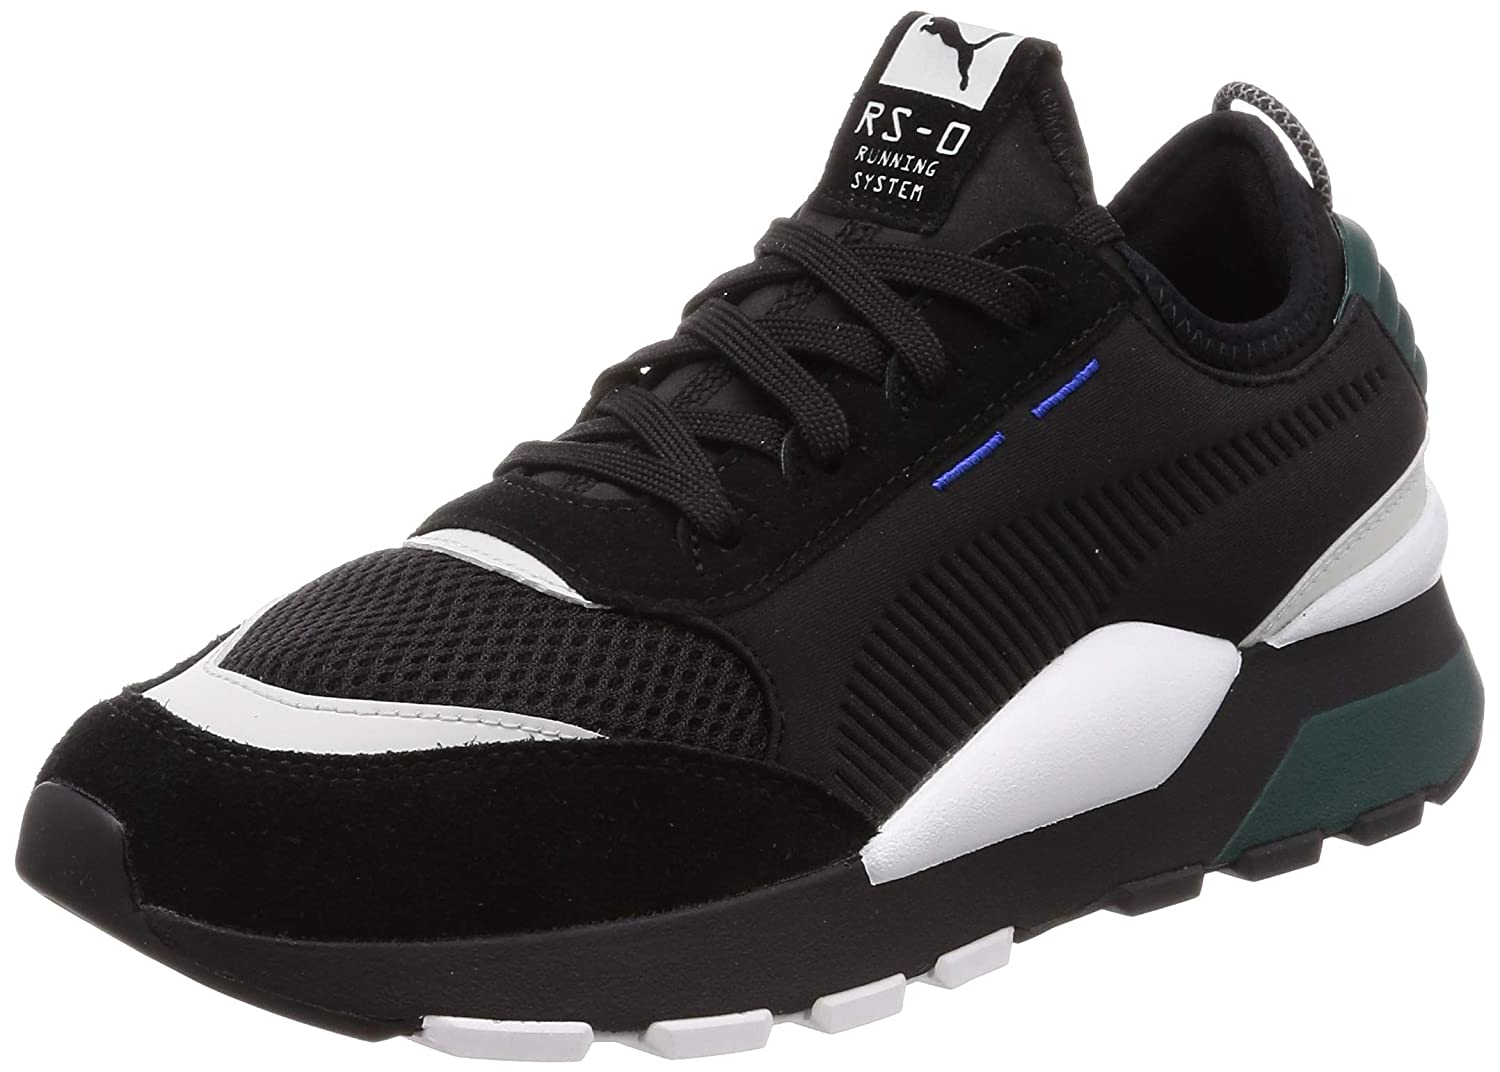 TALLA 46 EU. Puma RS-0 Winter Inj Toys, Zapatillas Unisex Adulto